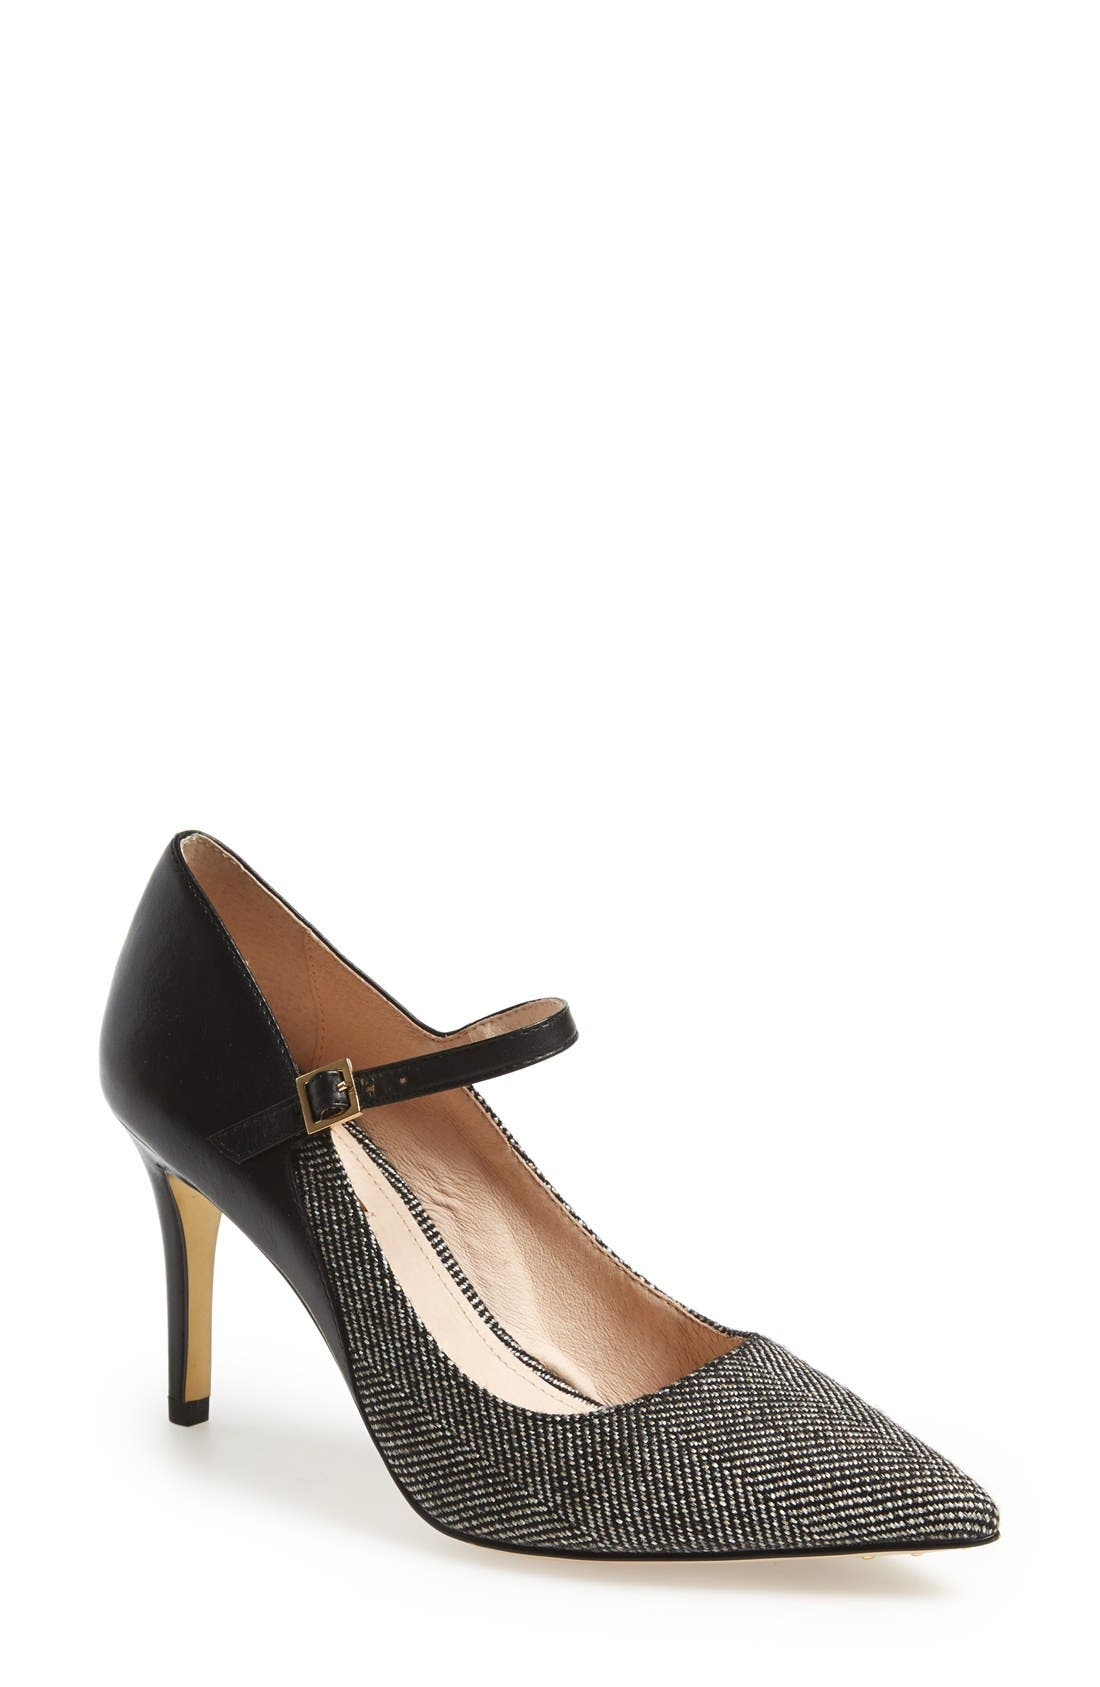 Alternate Image 1 Selected - Louise et Cie 'Ione' Mary Jane Pump (Women)